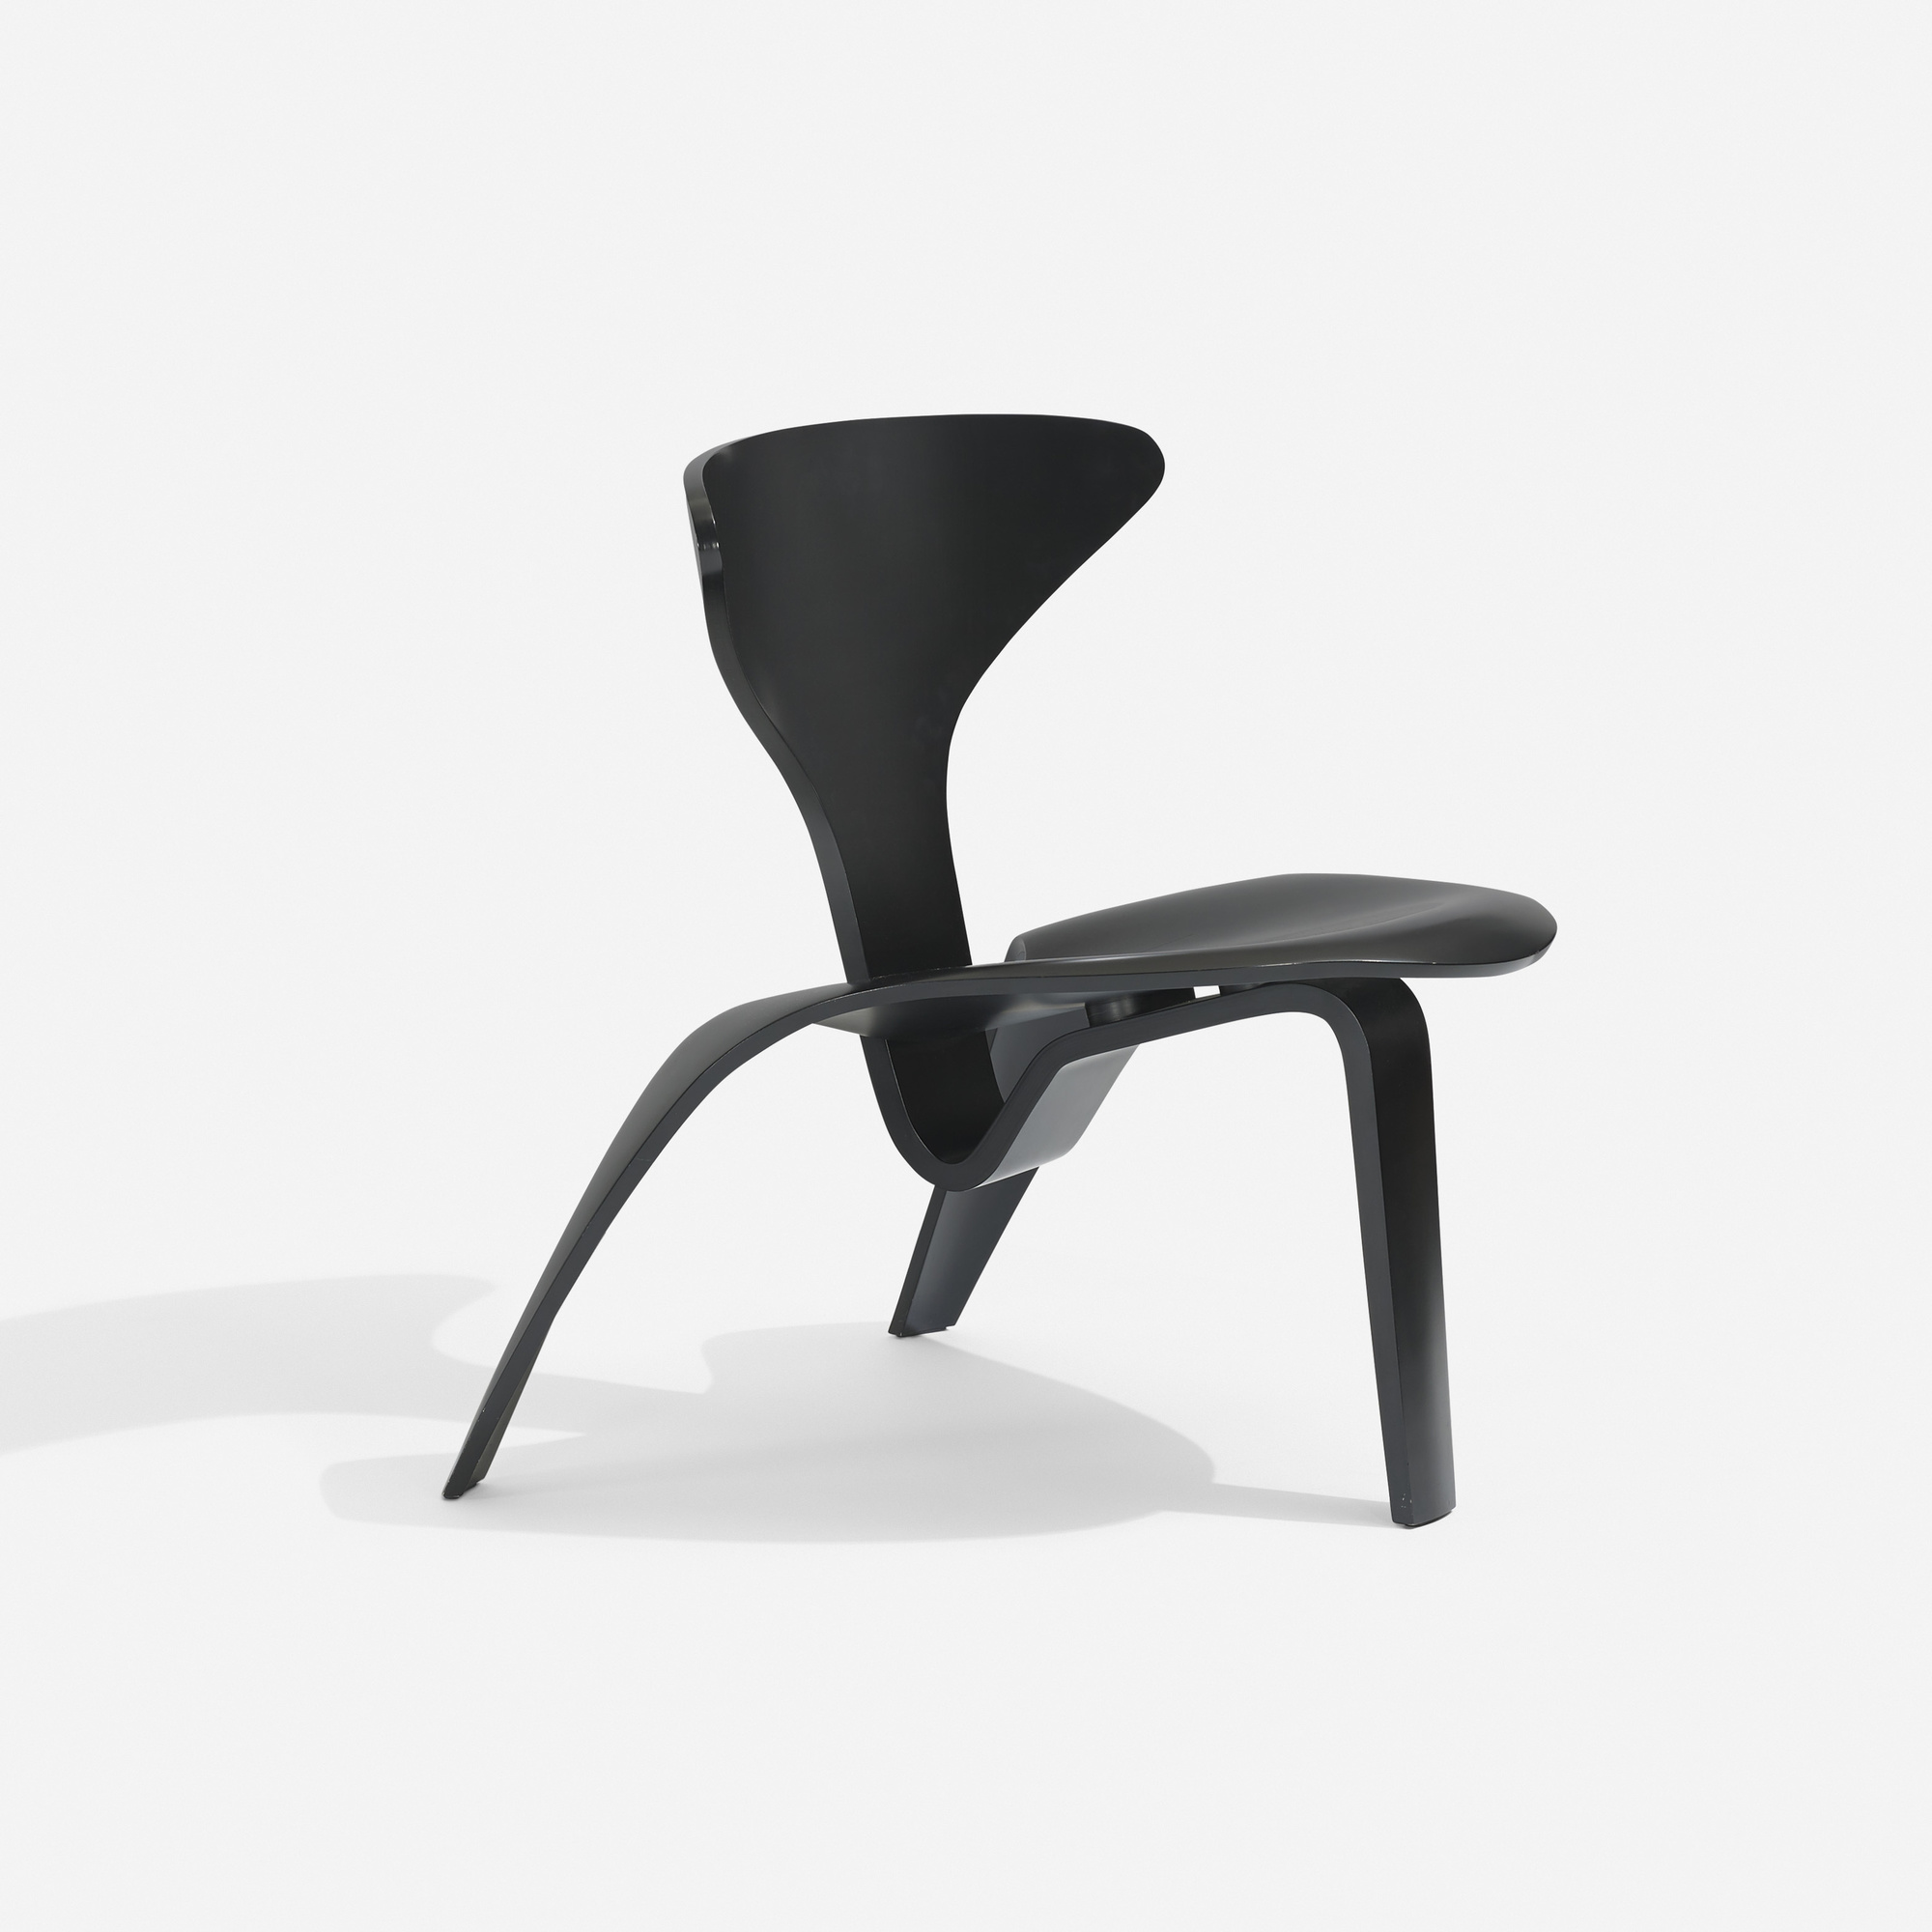 171: Poul Kjaerholm / PK 0 lounge chair (1 of 3)